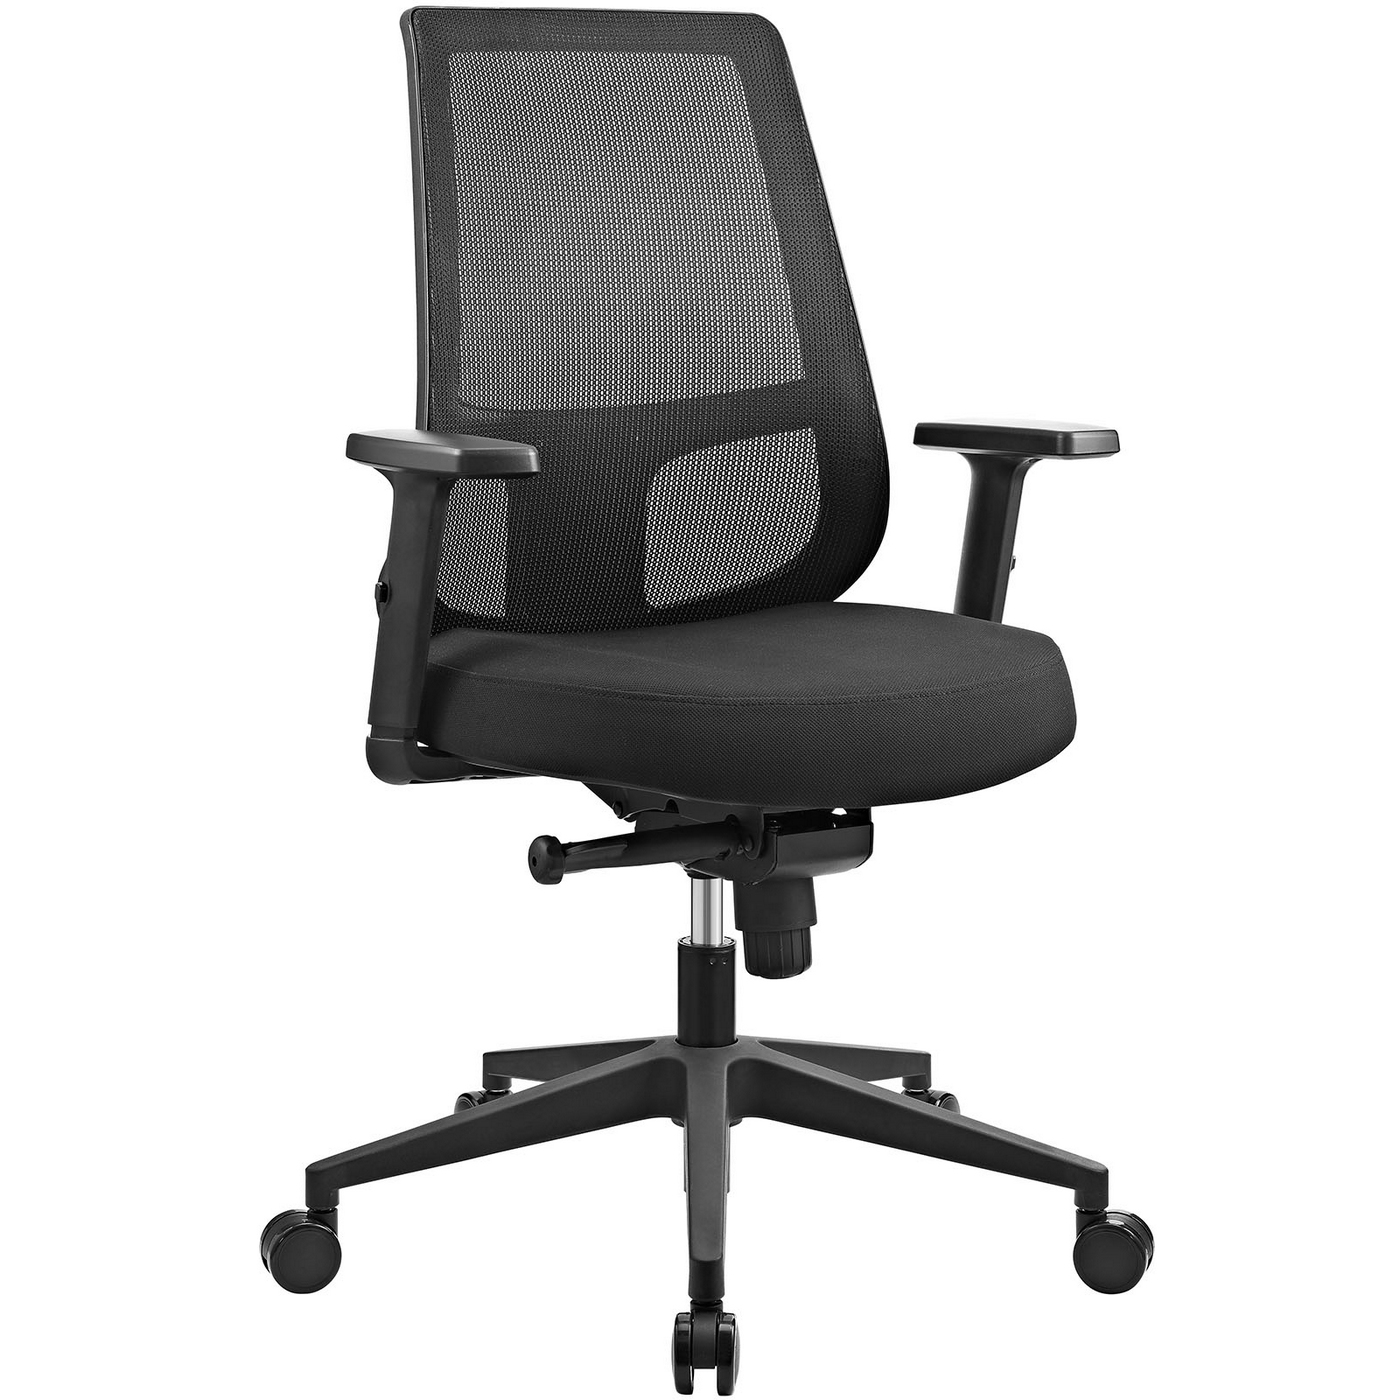 Ergonomic Mesh Office Chair Pump Ergonomic Mesh Back Office Chair With Lumbar Support